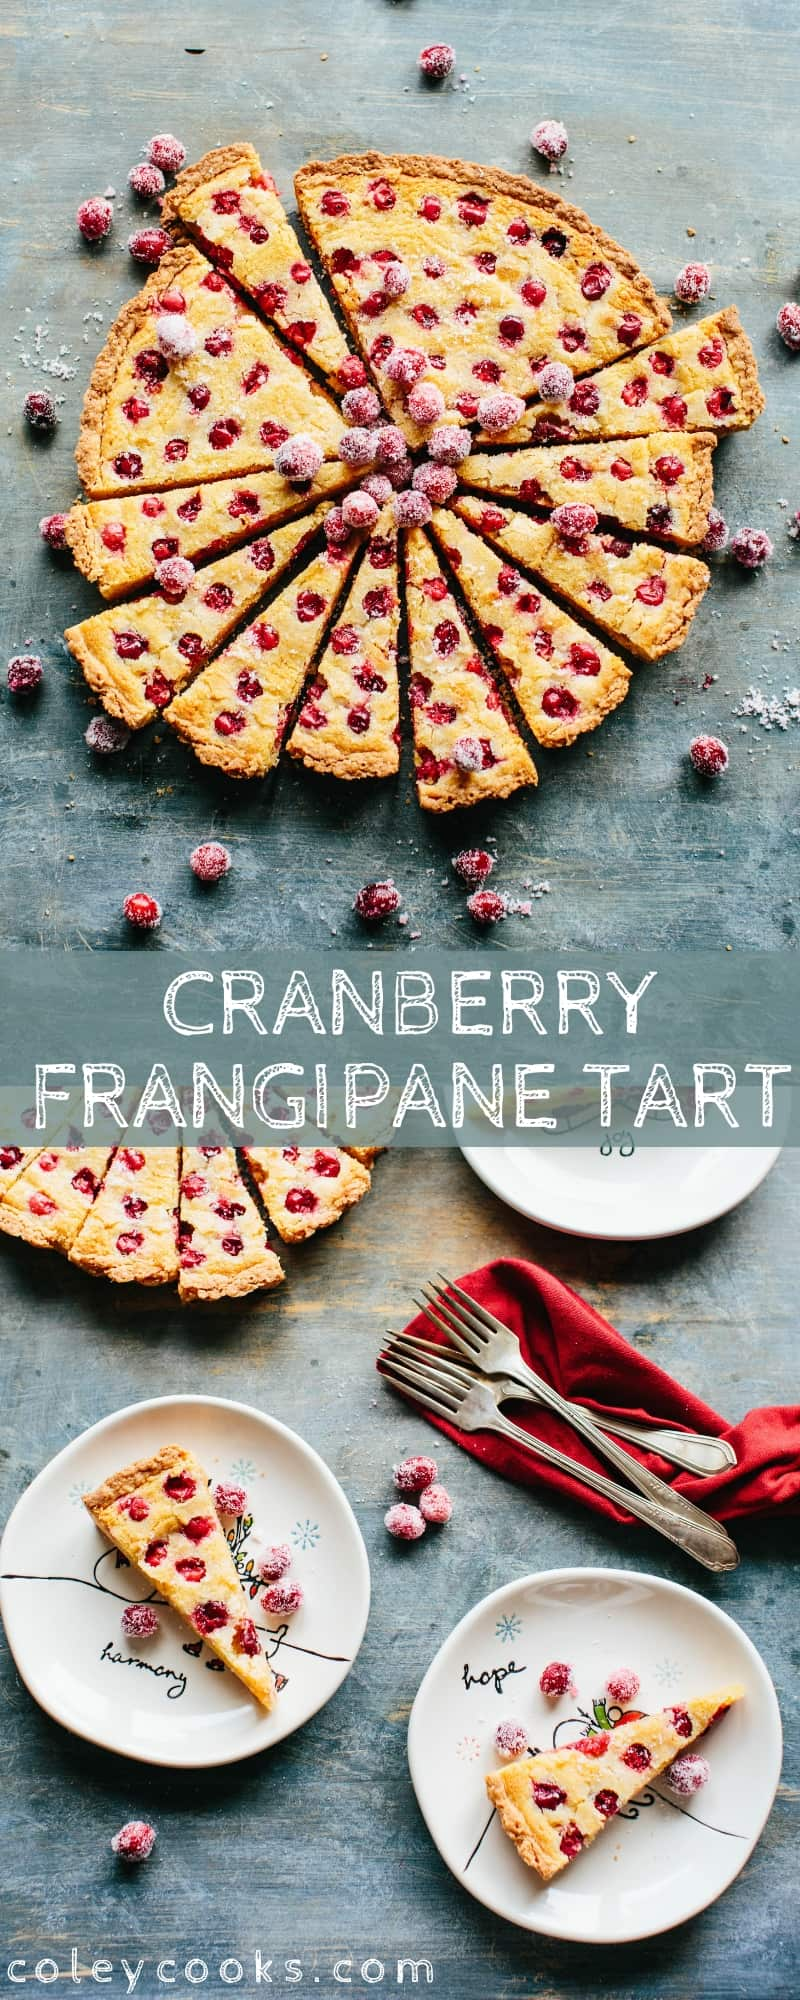 This Cranberry Frangipane Tart is an easy and elegant holiday dessert that features tart cranberries and creamy frangipane in a buttery shortbread crust. #easy #thanksgiving #shortbread #cranberry #frangipane #tart #recipe | ColeyCooks.com